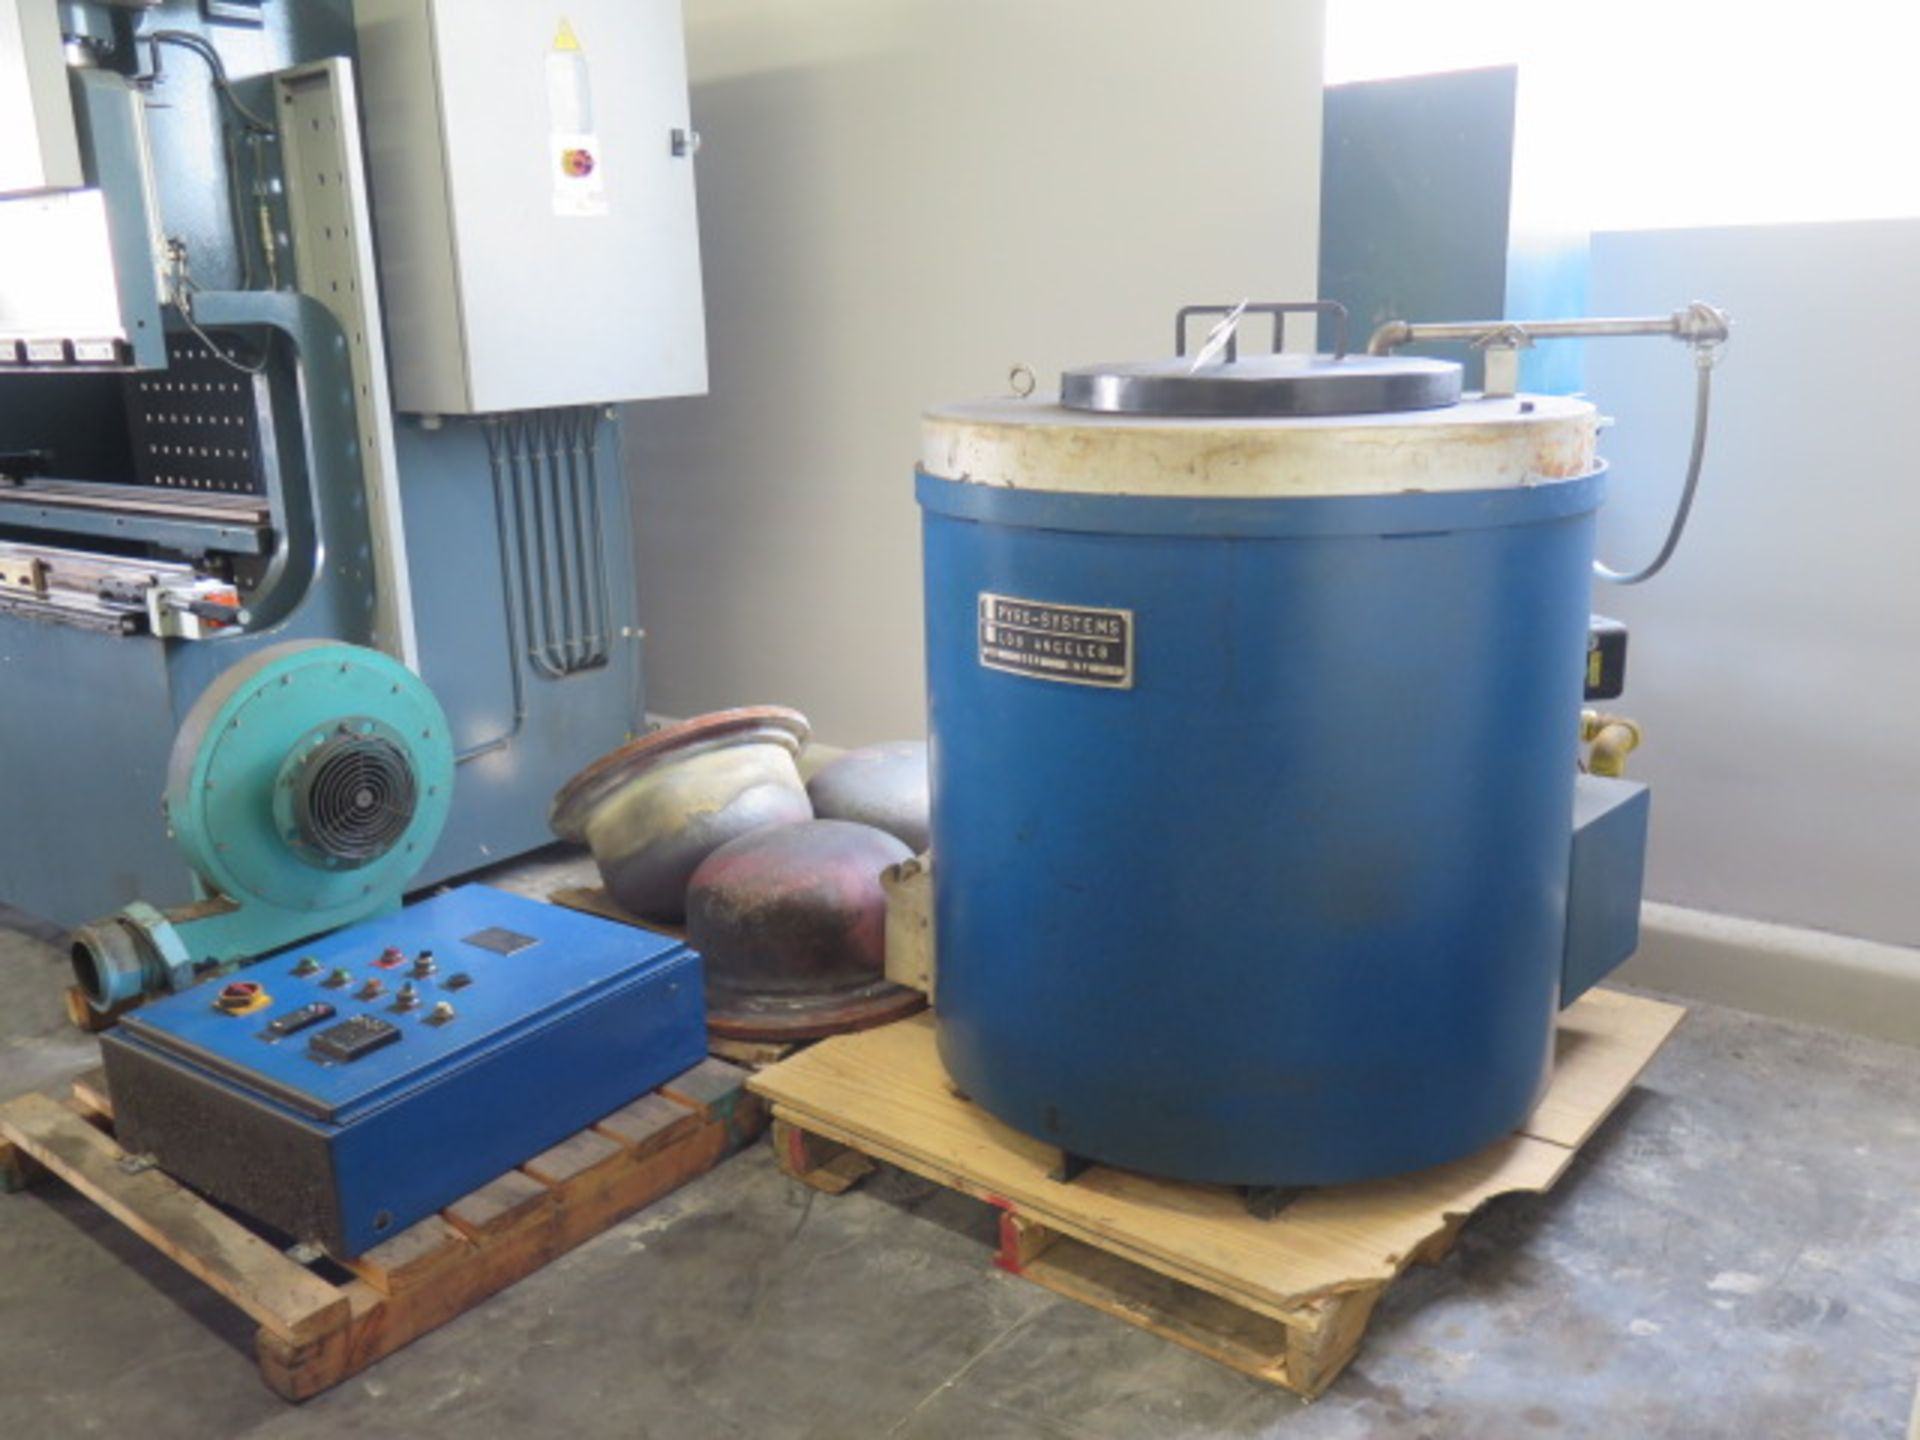 Lot 33 - Pyro Systems mdl. 600AMC 1000K Furnace s/n 592 w/ Natural Gas Fired Burner, (3) Crucibles